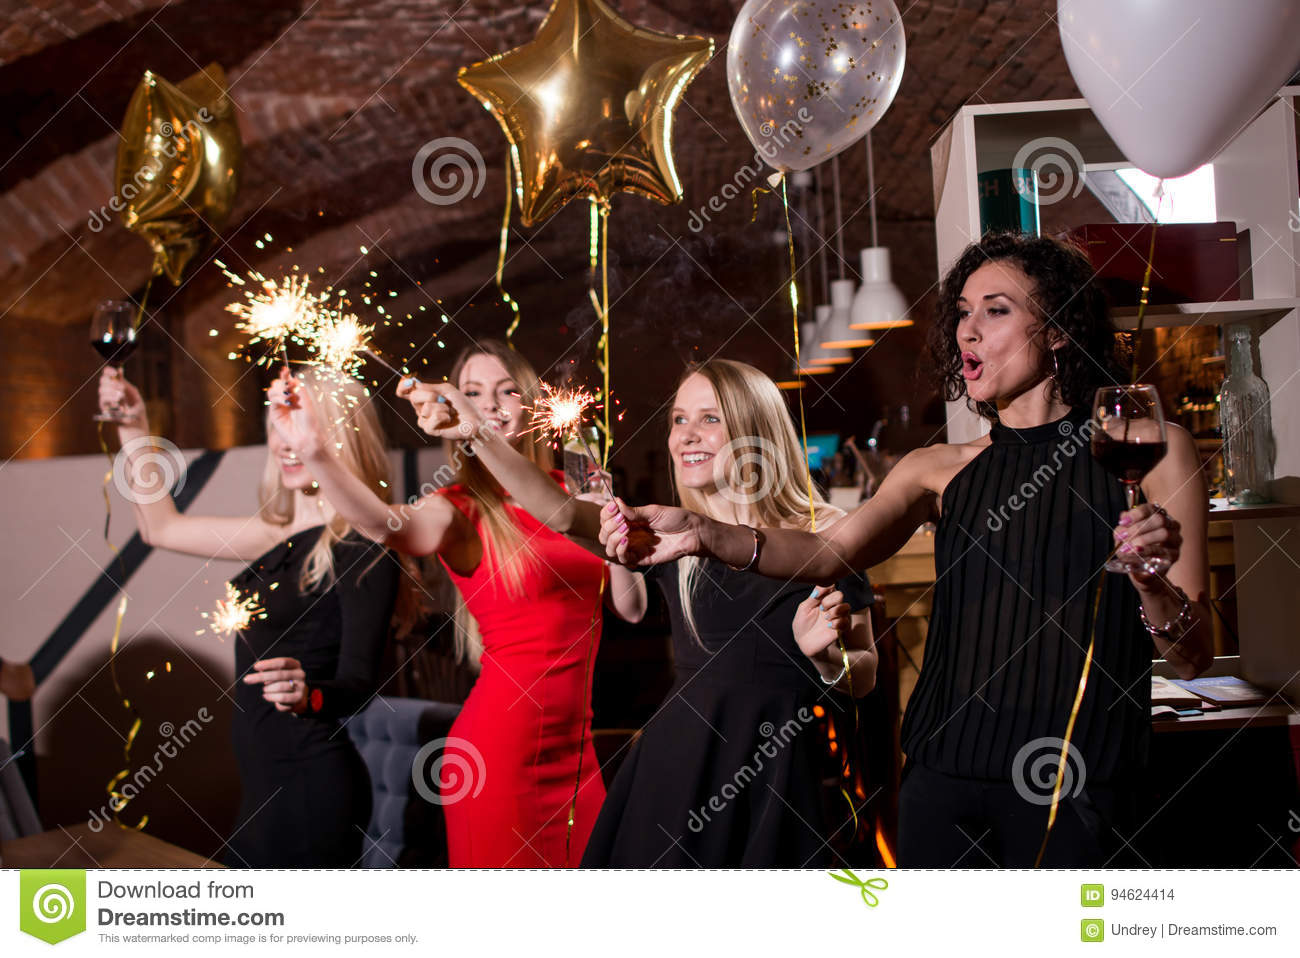 Happy pretty young women holding firework sparklers, balloons, glasses of wine celebrating a holiday in restaurant with